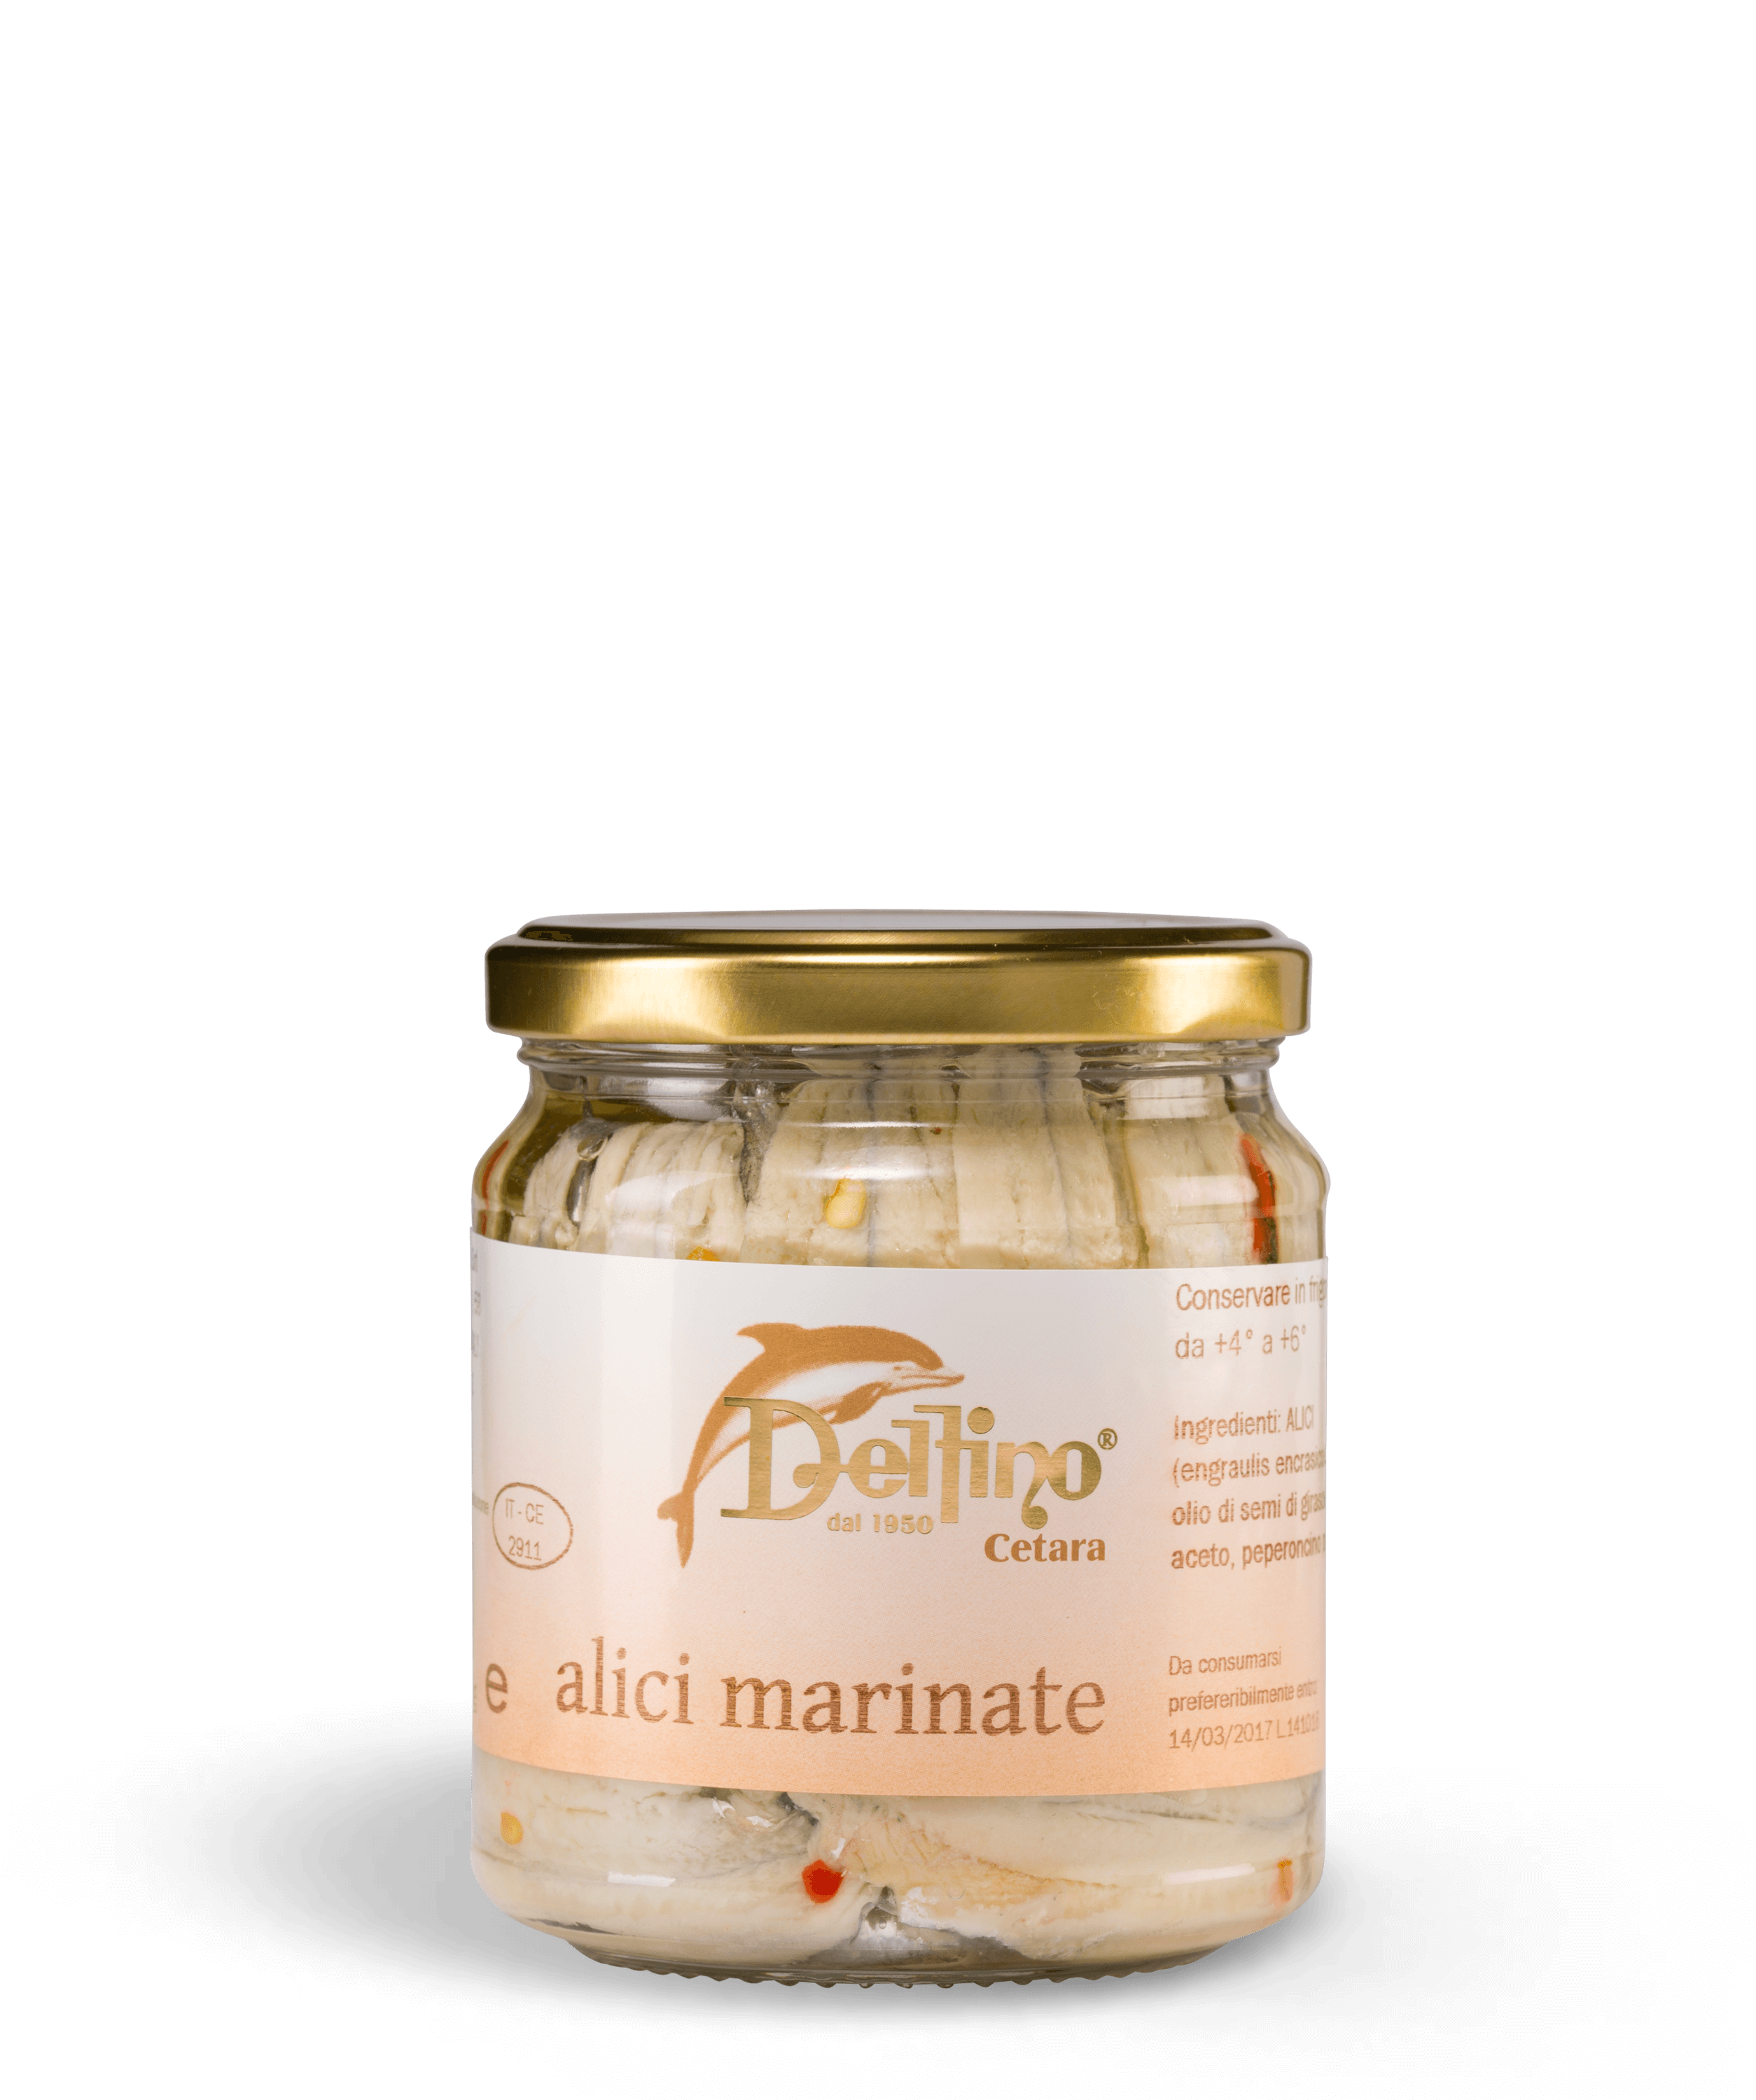 Come Cucinare Le Alici Marinate Alici Marinate Delfino Battista